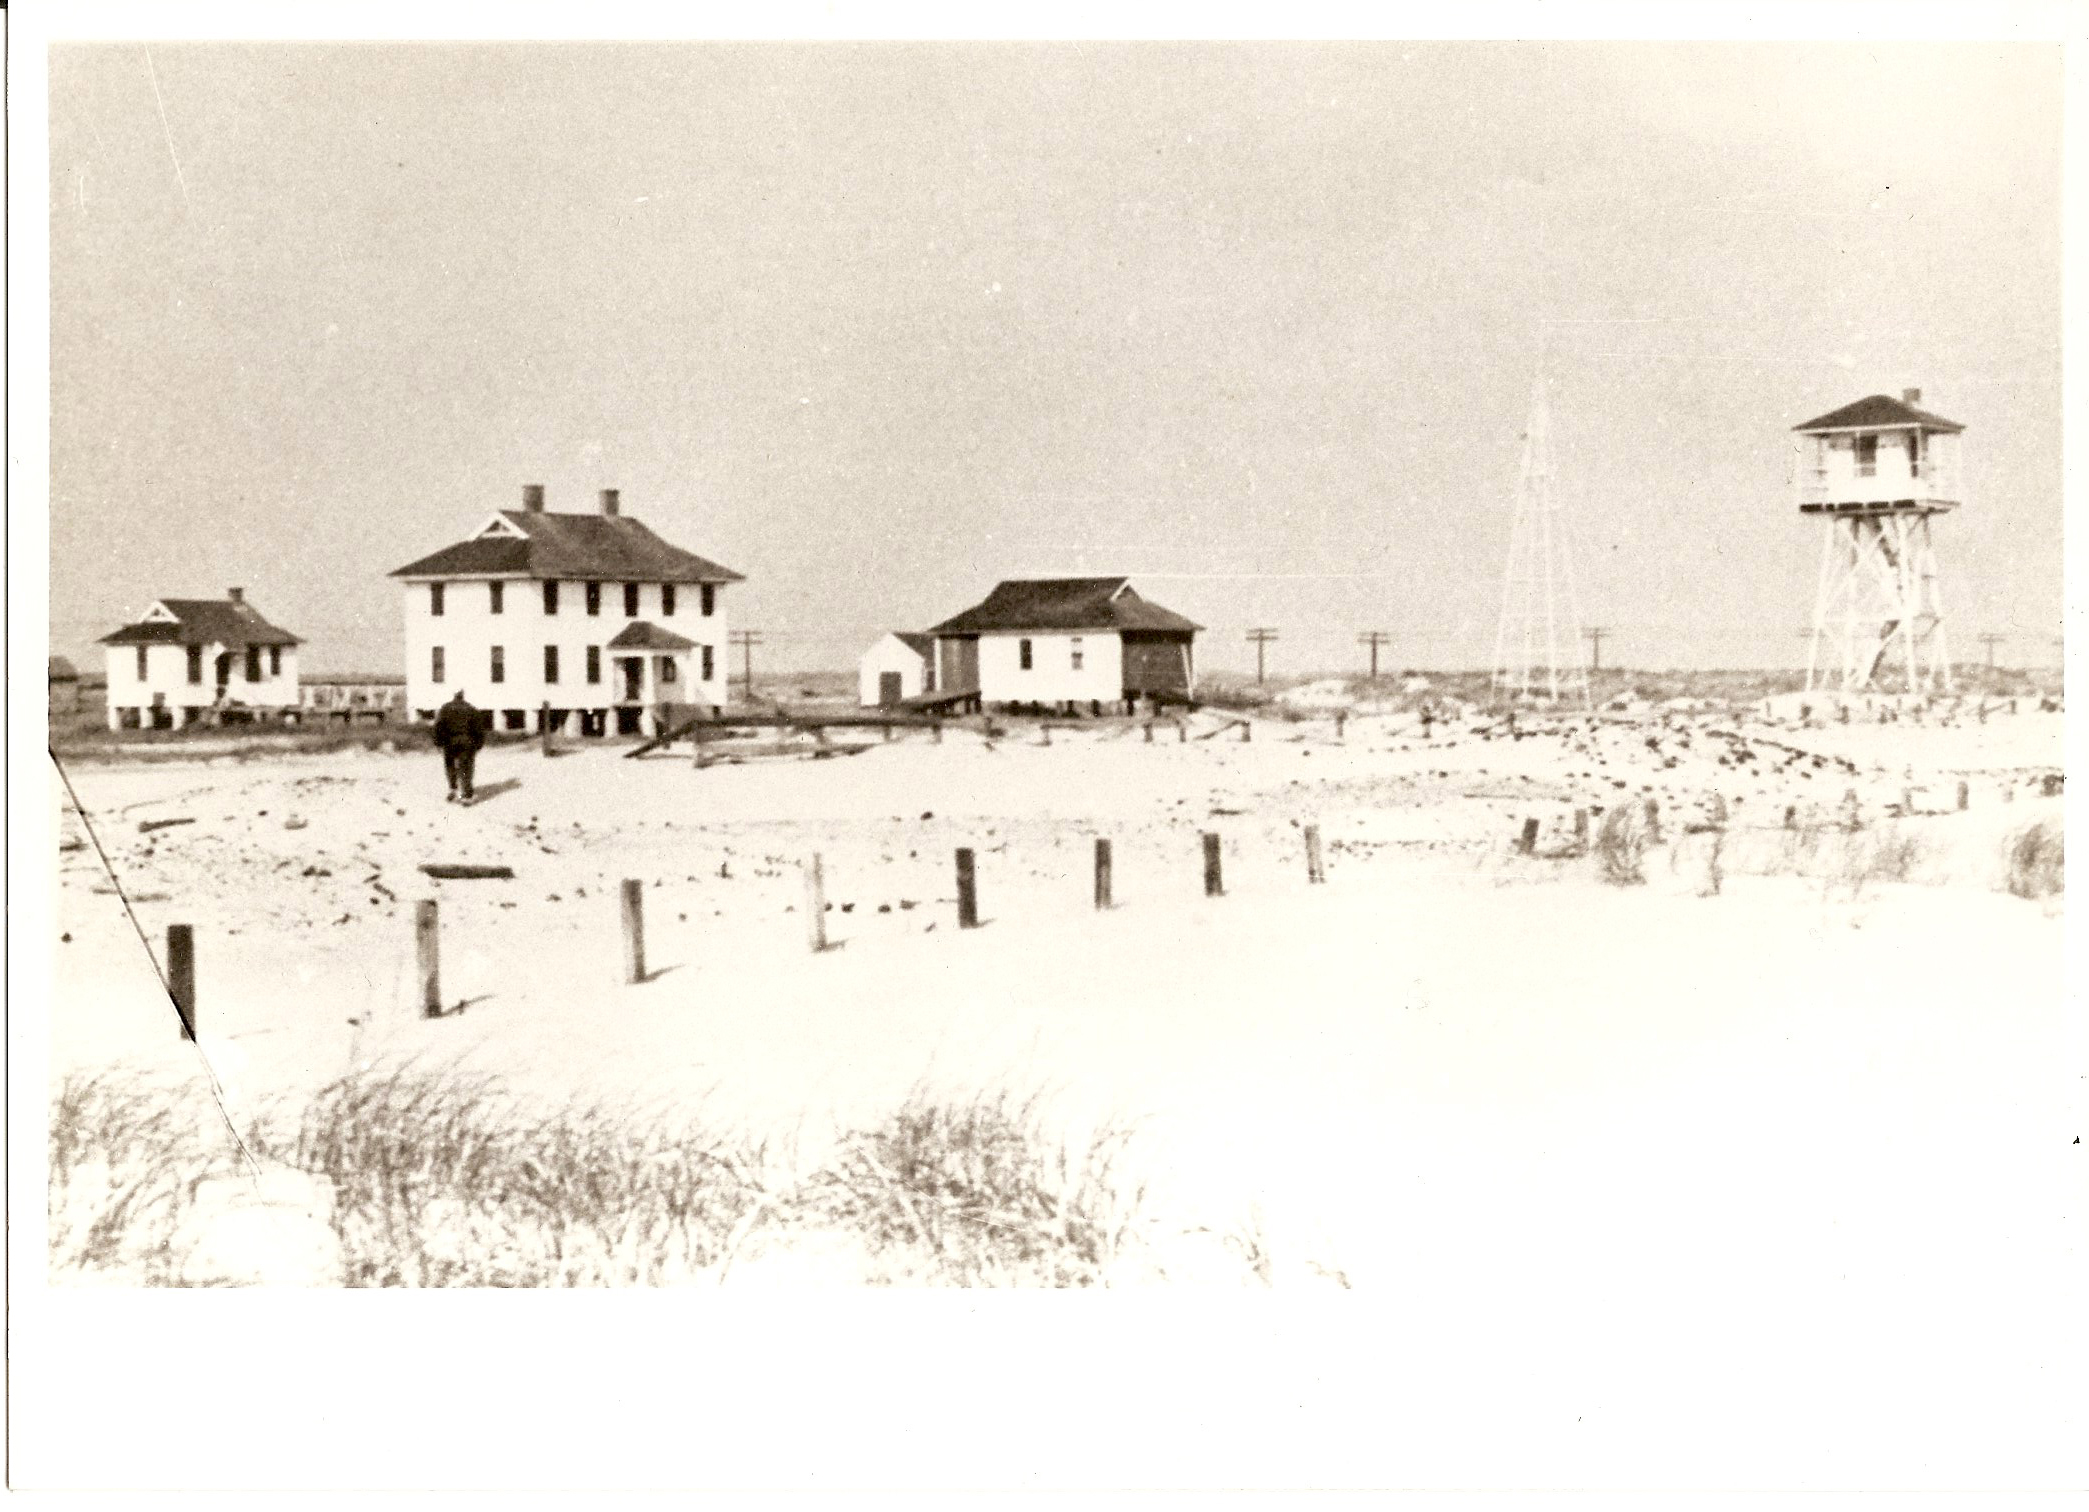 Outer Banks History: Our Past, Present, and Future Selves